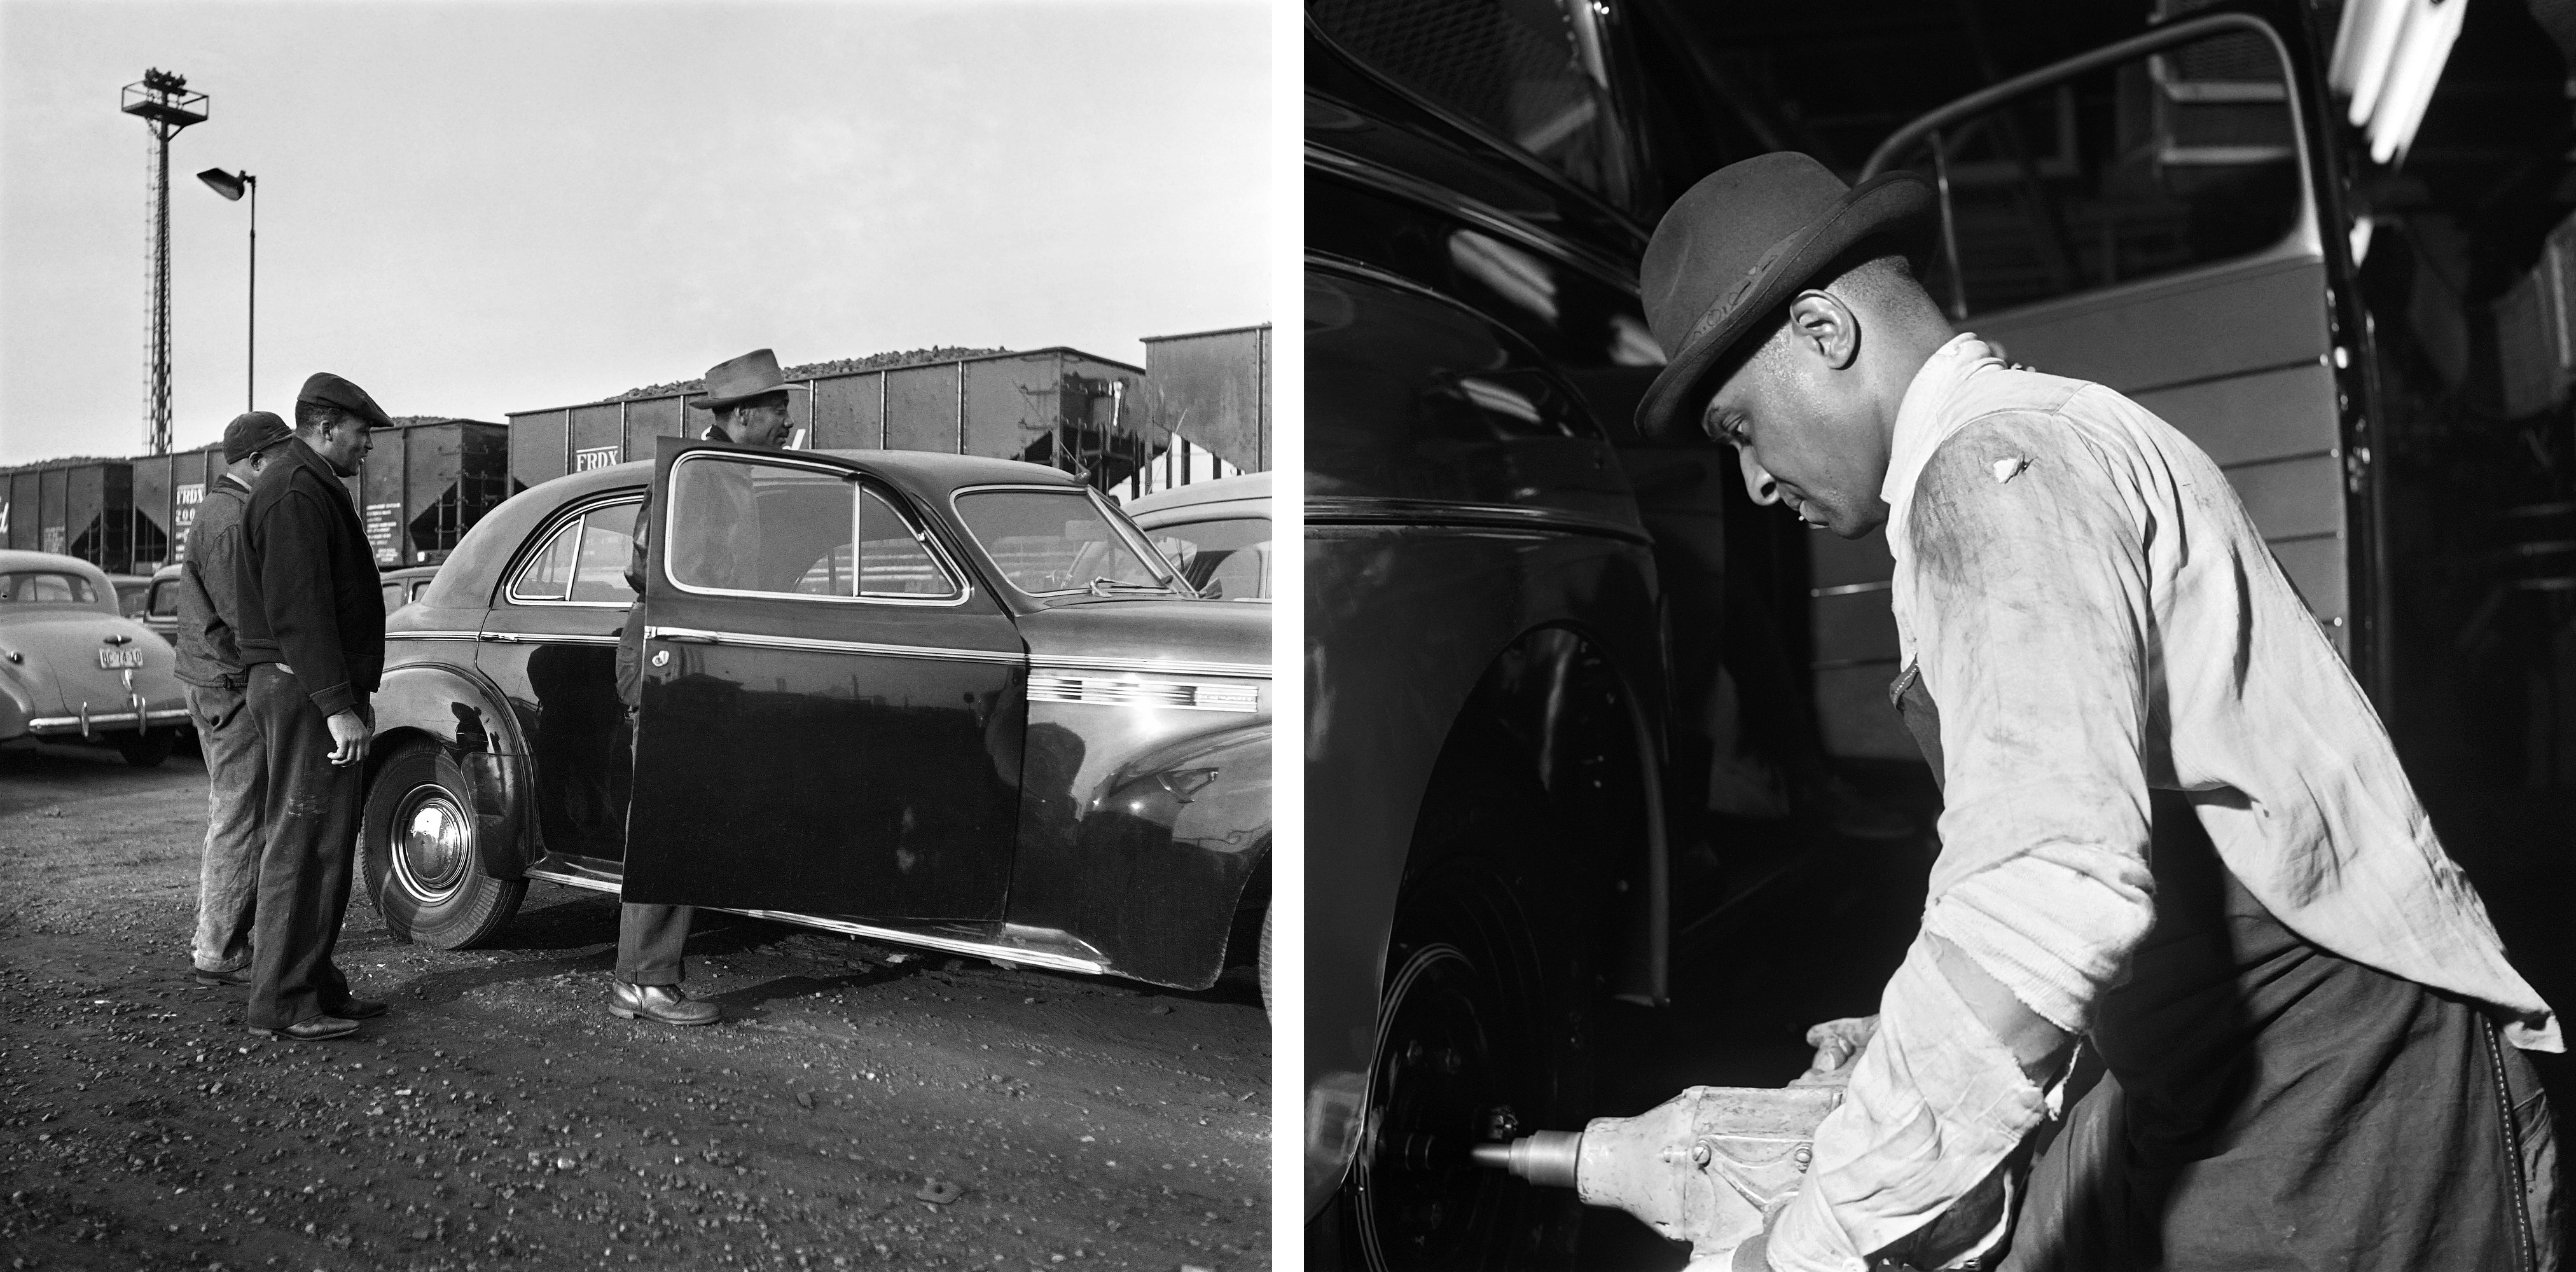 Left: A man works on an assembly line in 1946 at Ford's River Rouge Complex. Right: Workers arrive by car at the complex in 1946.